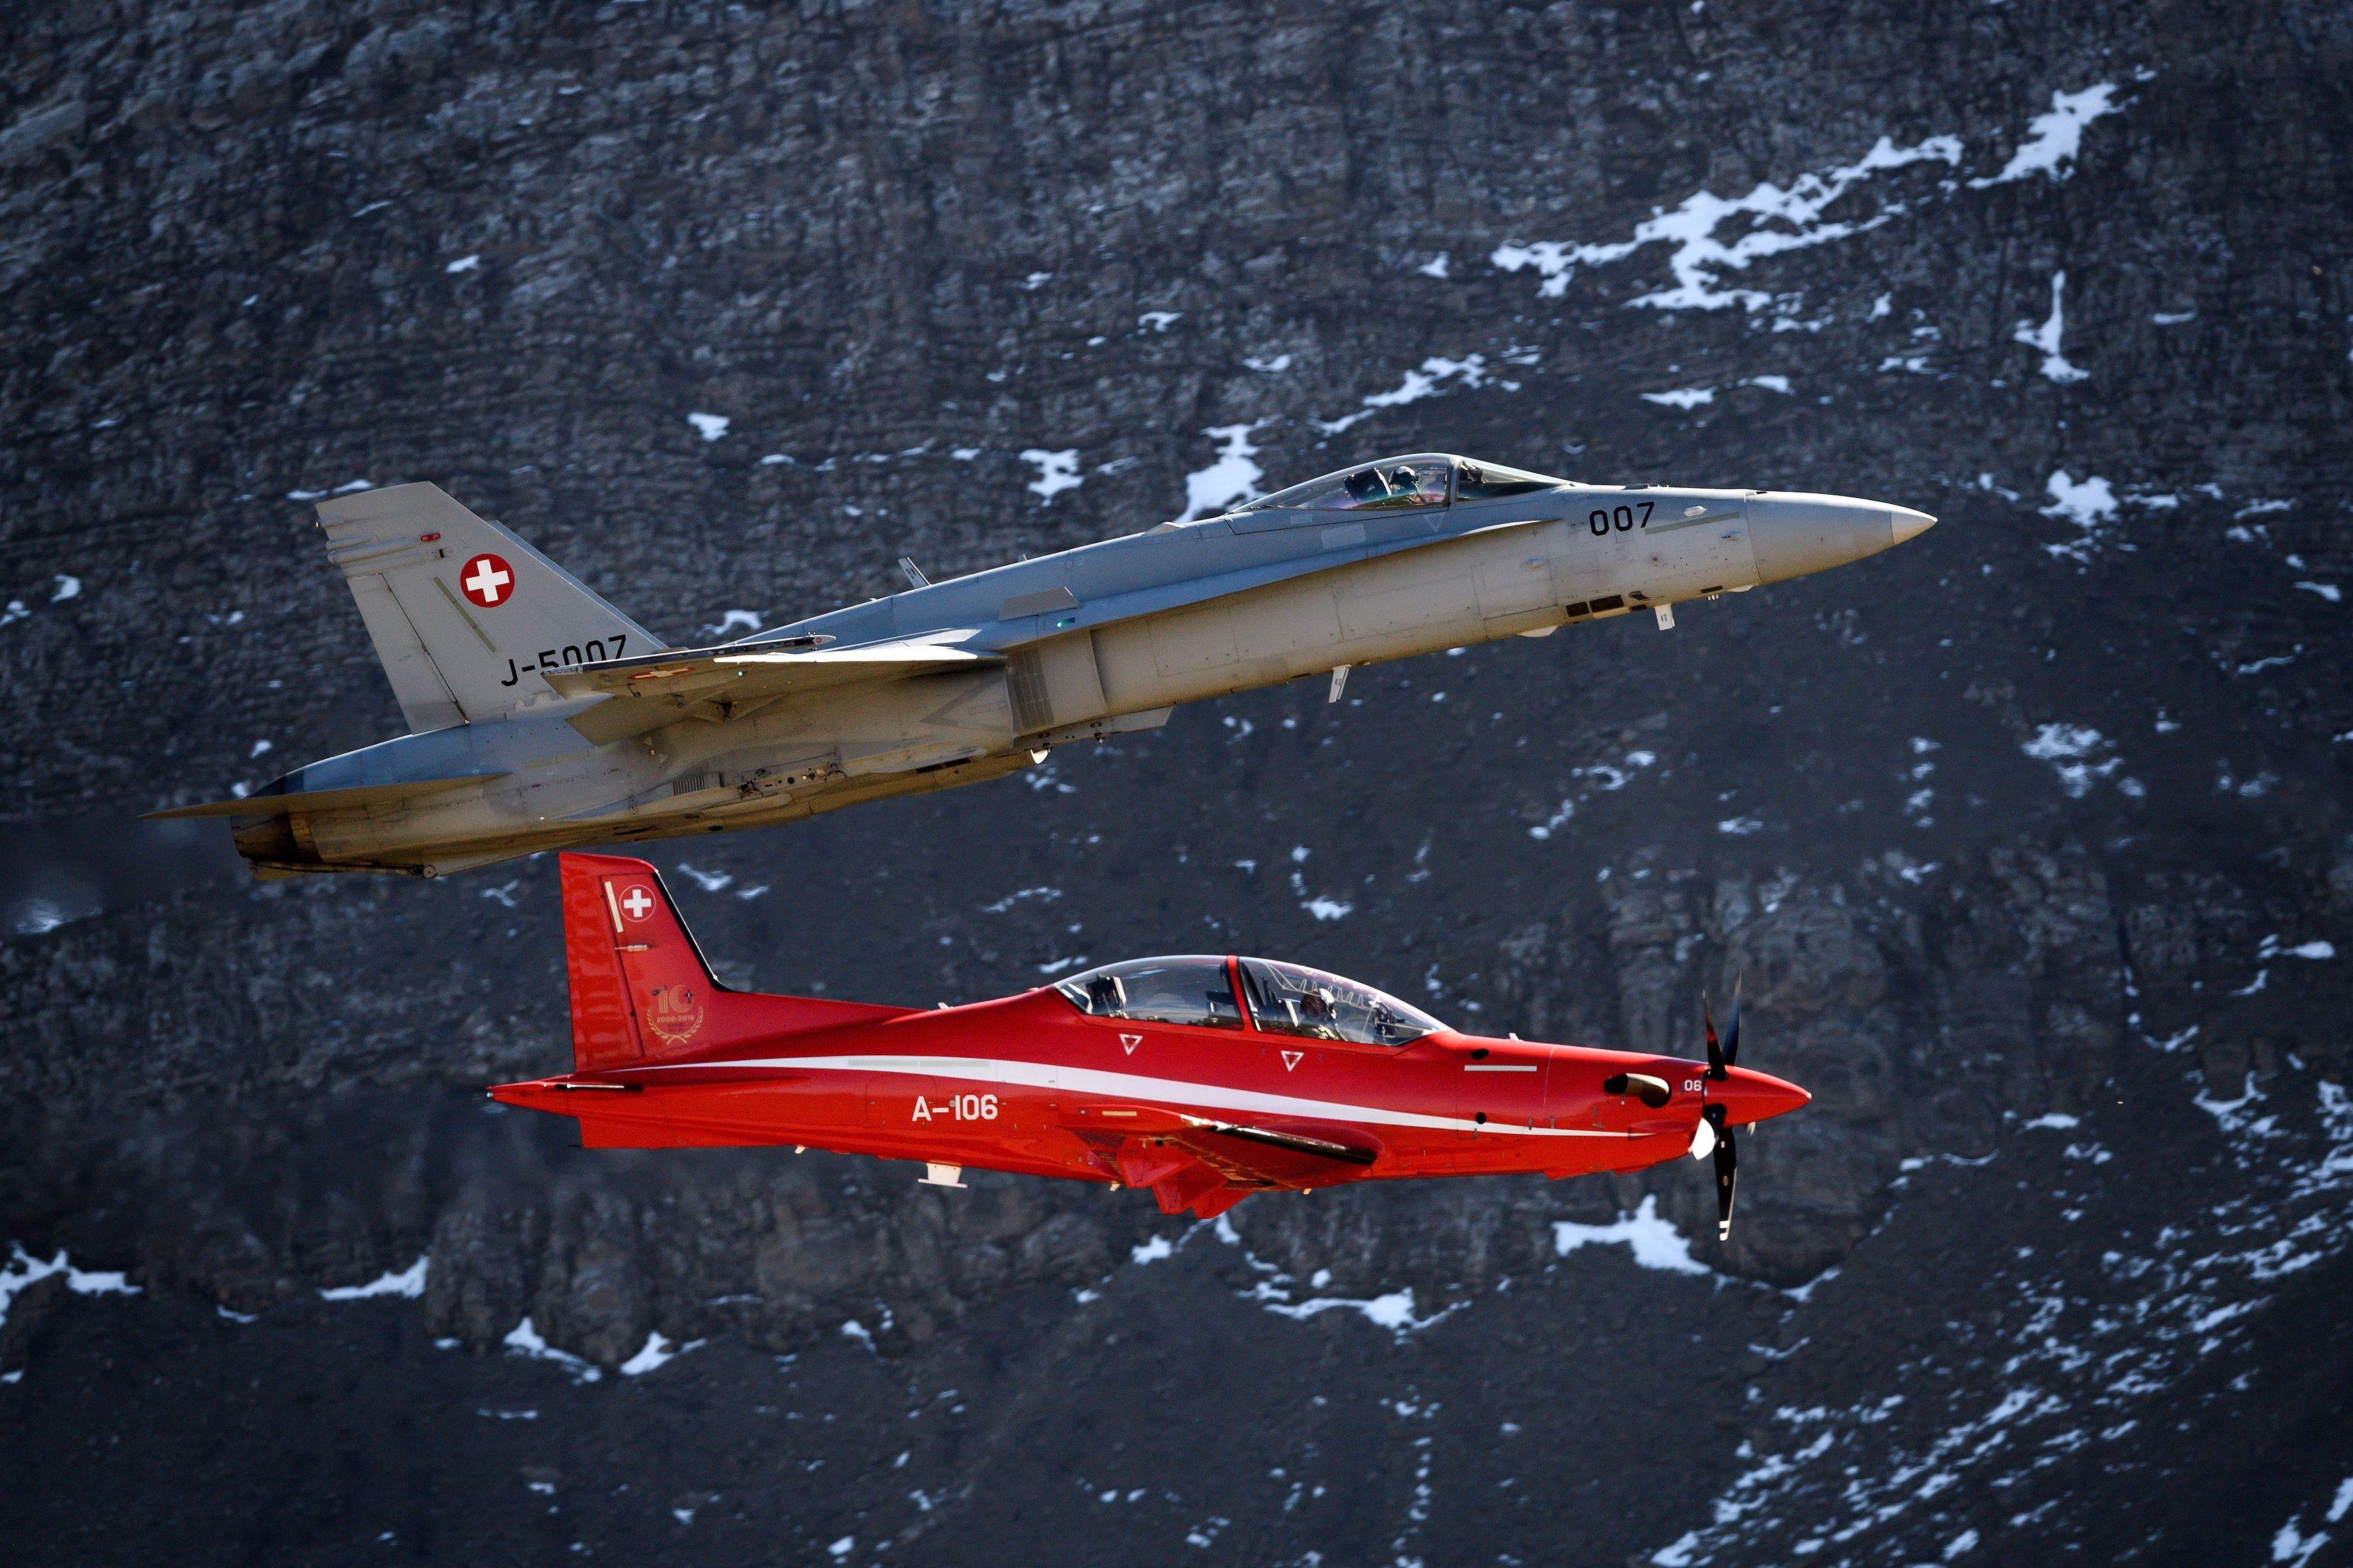 An F/A-18 Hornet fighter aircraft (above) flies next to a Pilatus PC-21 during the annual live fire event of the Swiss Air Force at the Axalp, over Brienz, in the Bernese Alps on Oct. 10, 2018. (Fabrice Coffrini/AFP/Getty Images)